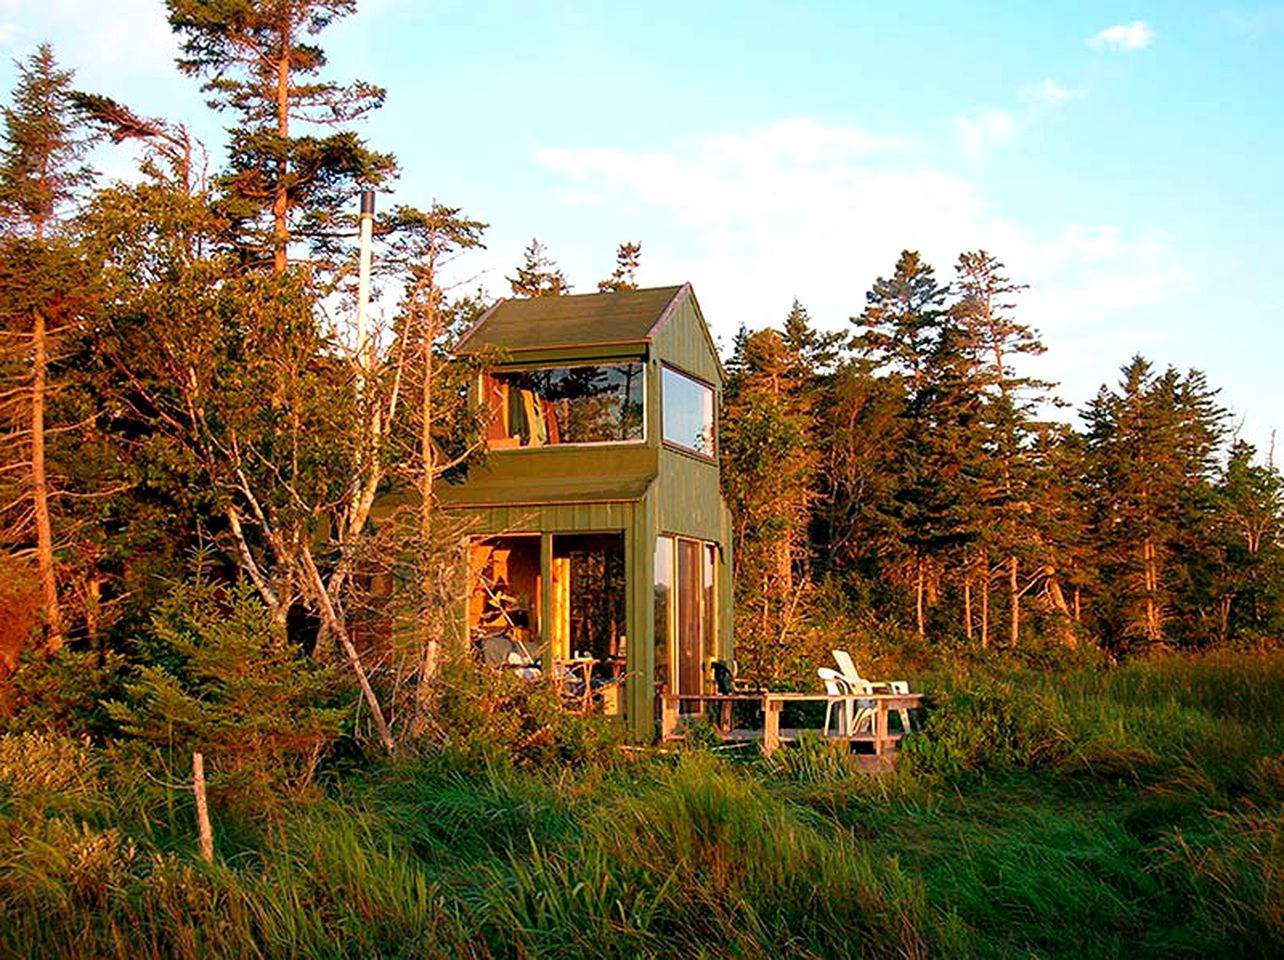 Cabins (Grand Manan, New Brunswick, Canada)